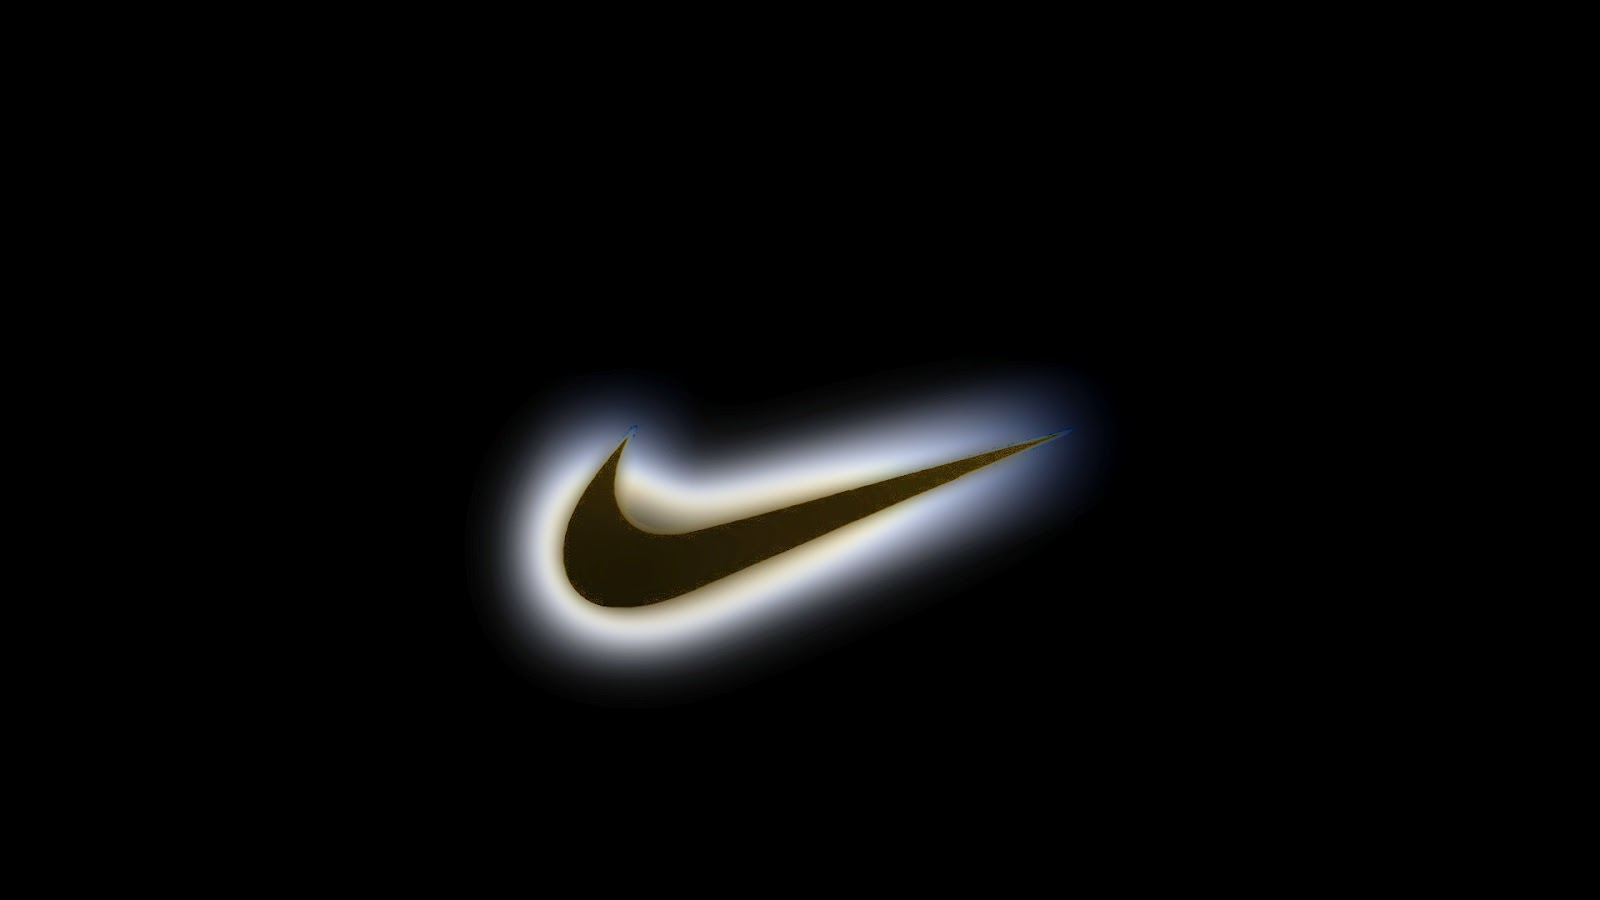 Eyesurfing nike wallpaper logo - Nike wallpaper hd ...